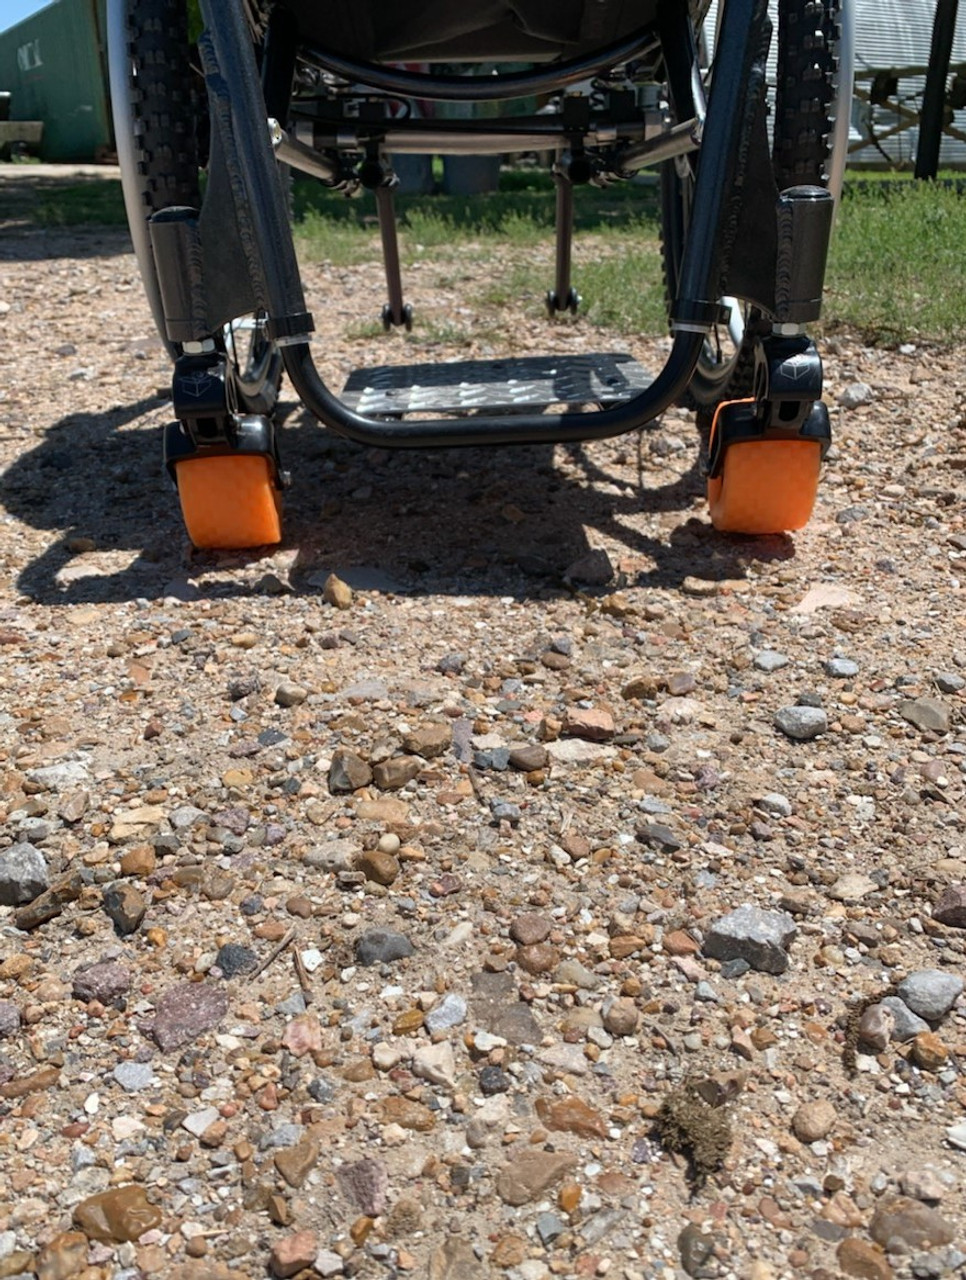 Off-Road Recoils, A Caster Suspension Solution by Box Wheelchairs